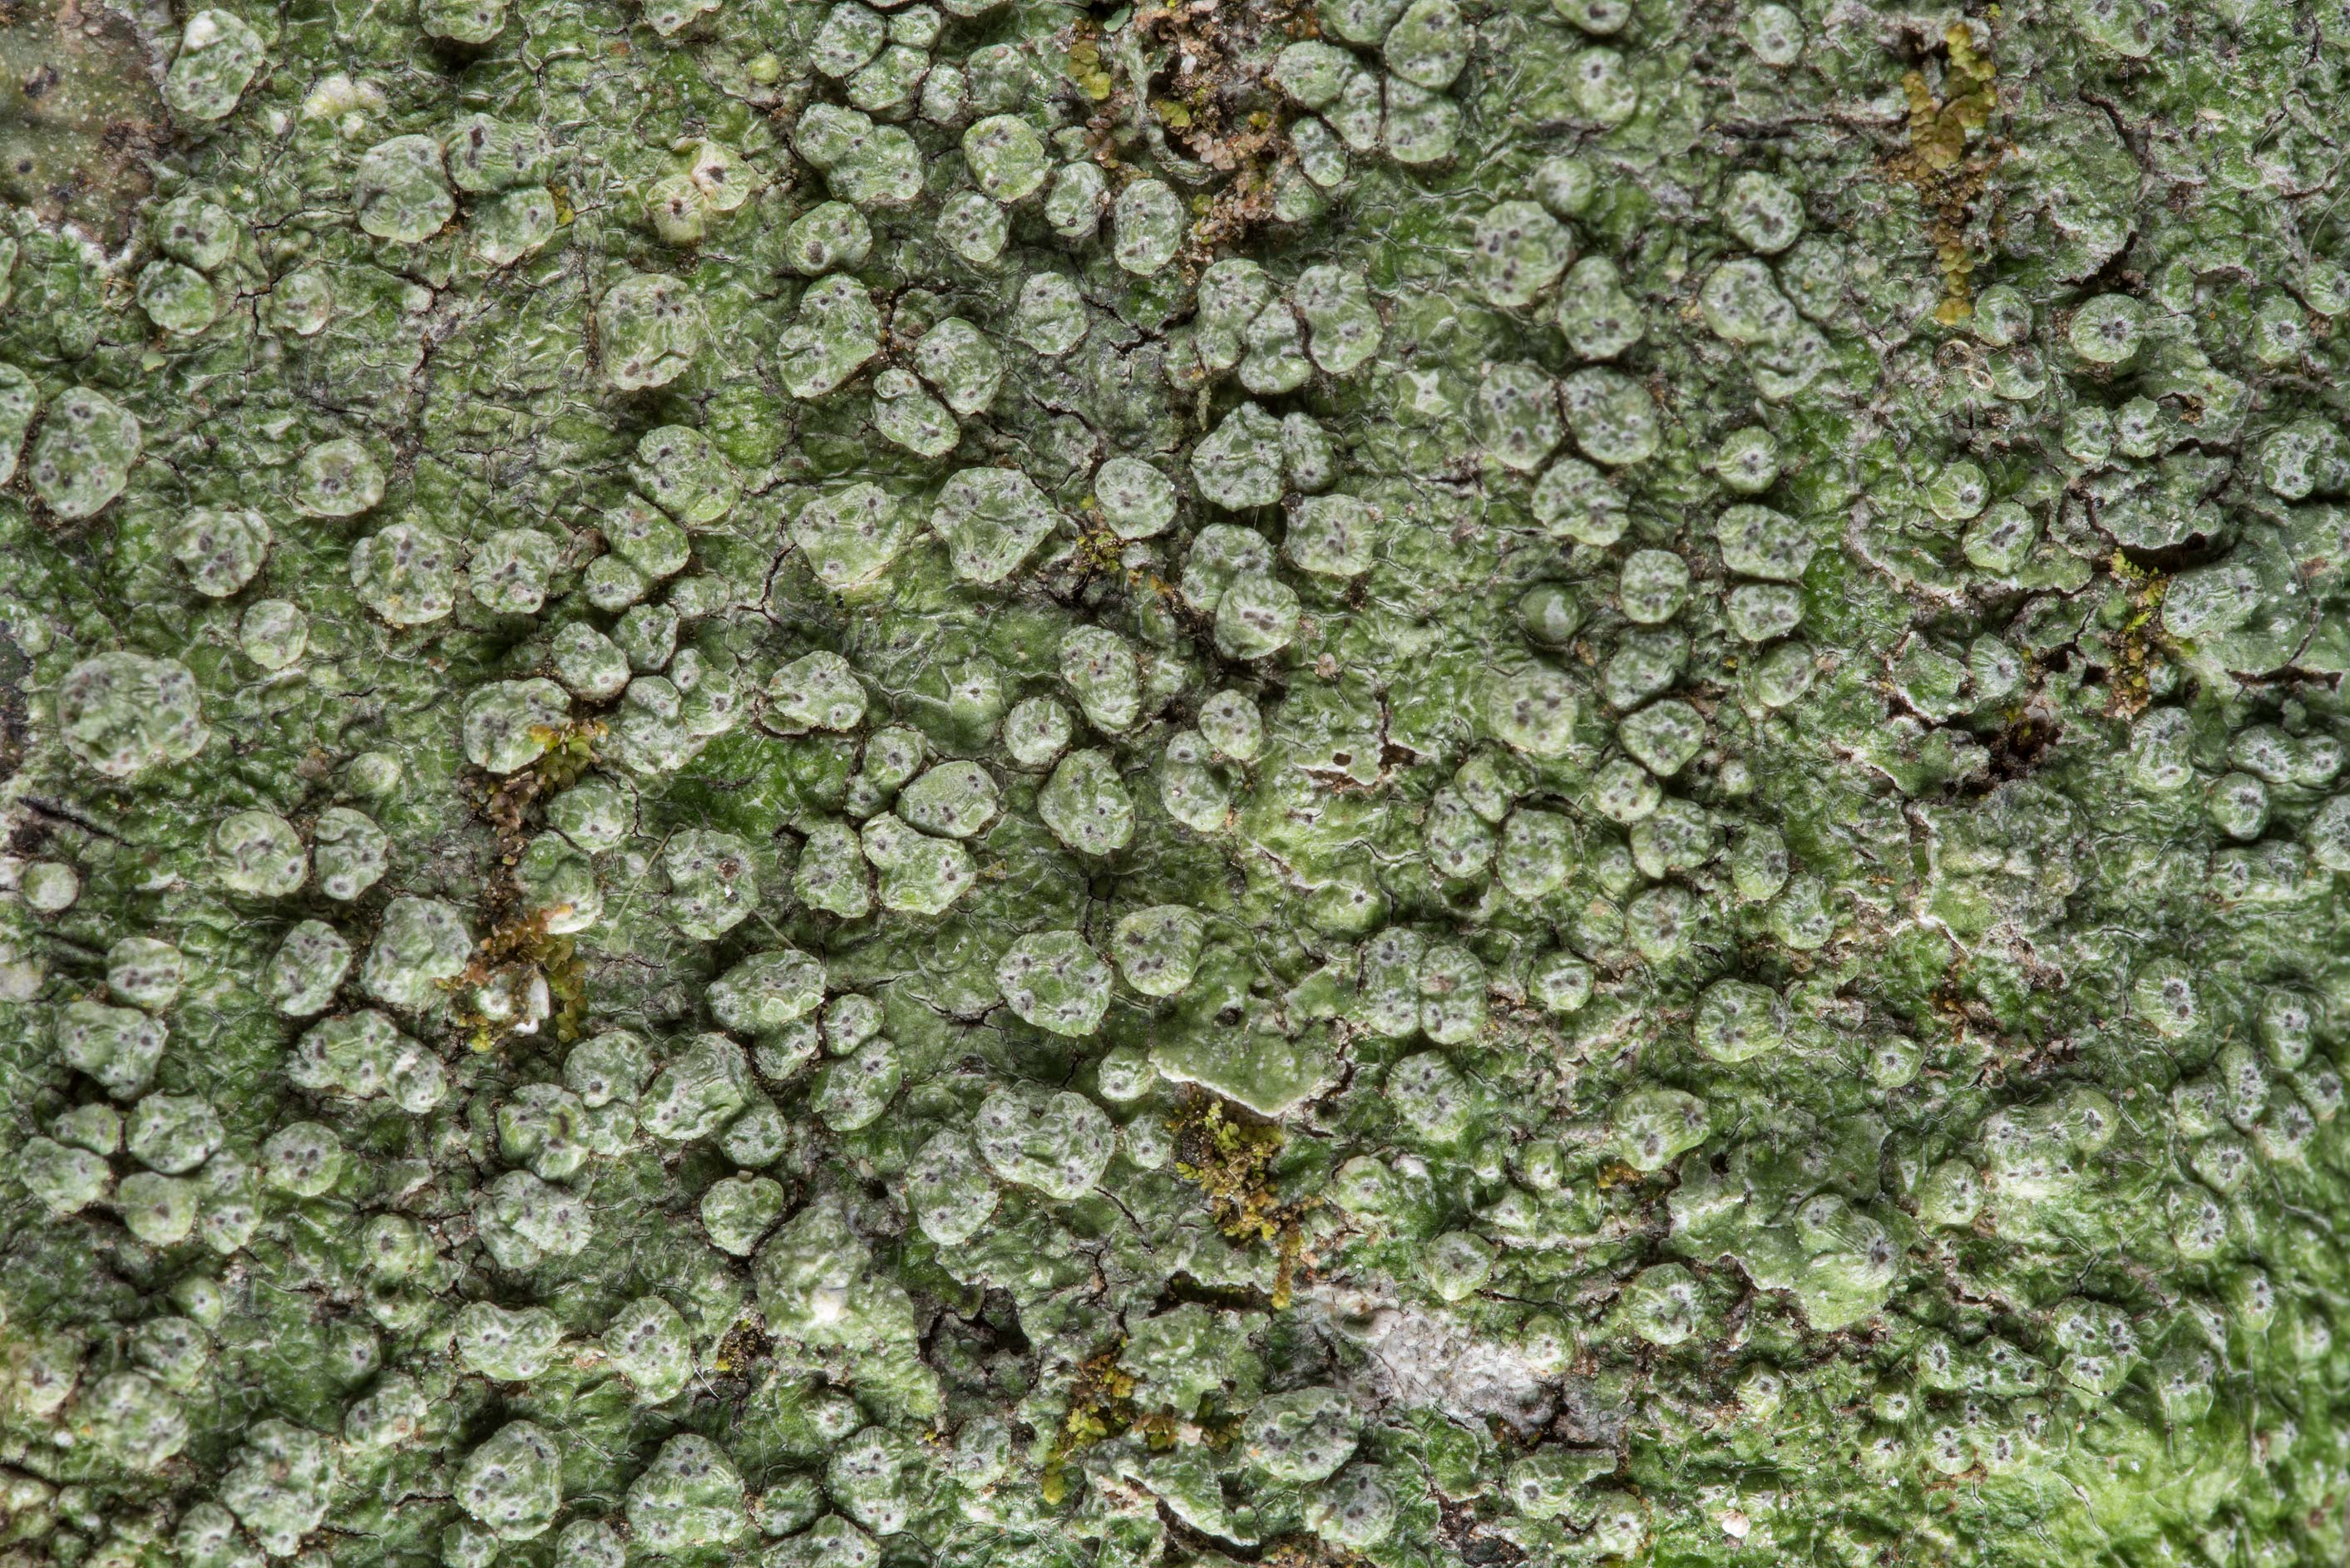 Warty lichen (Pertusaria) on Caney Creek section...National Forest near Huntsville. Texas